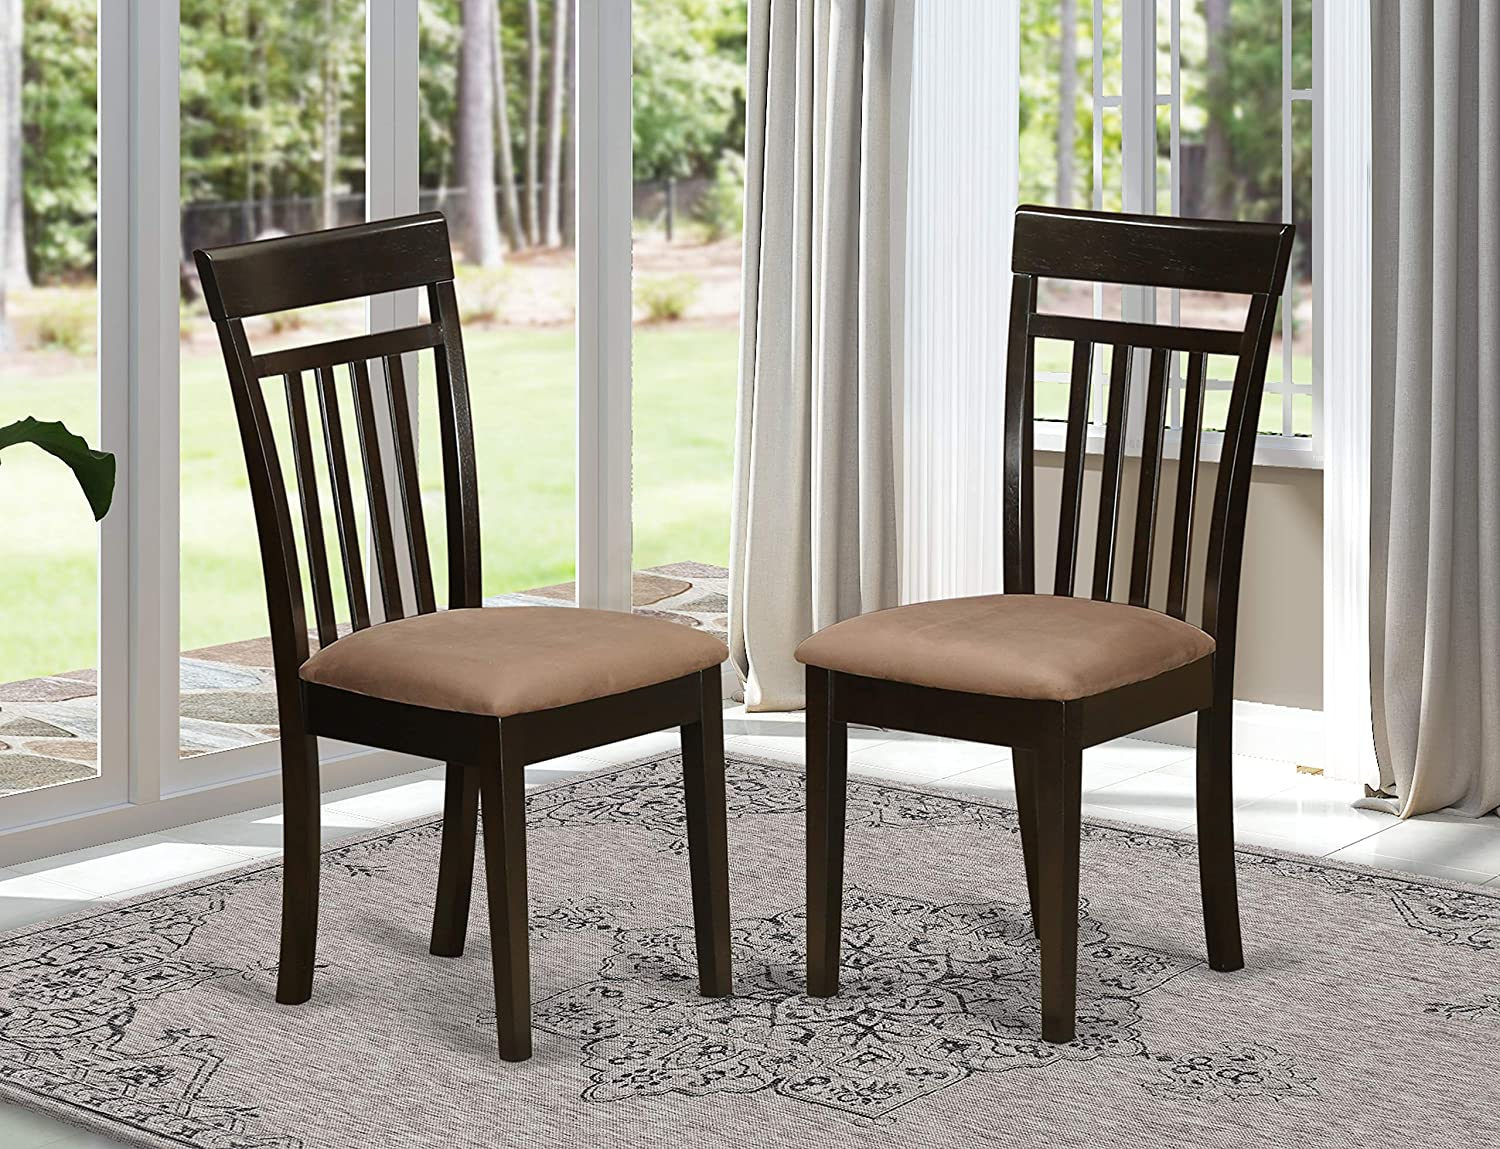 Boston X-Back dining chair with Faux Leather Upholstered Seat